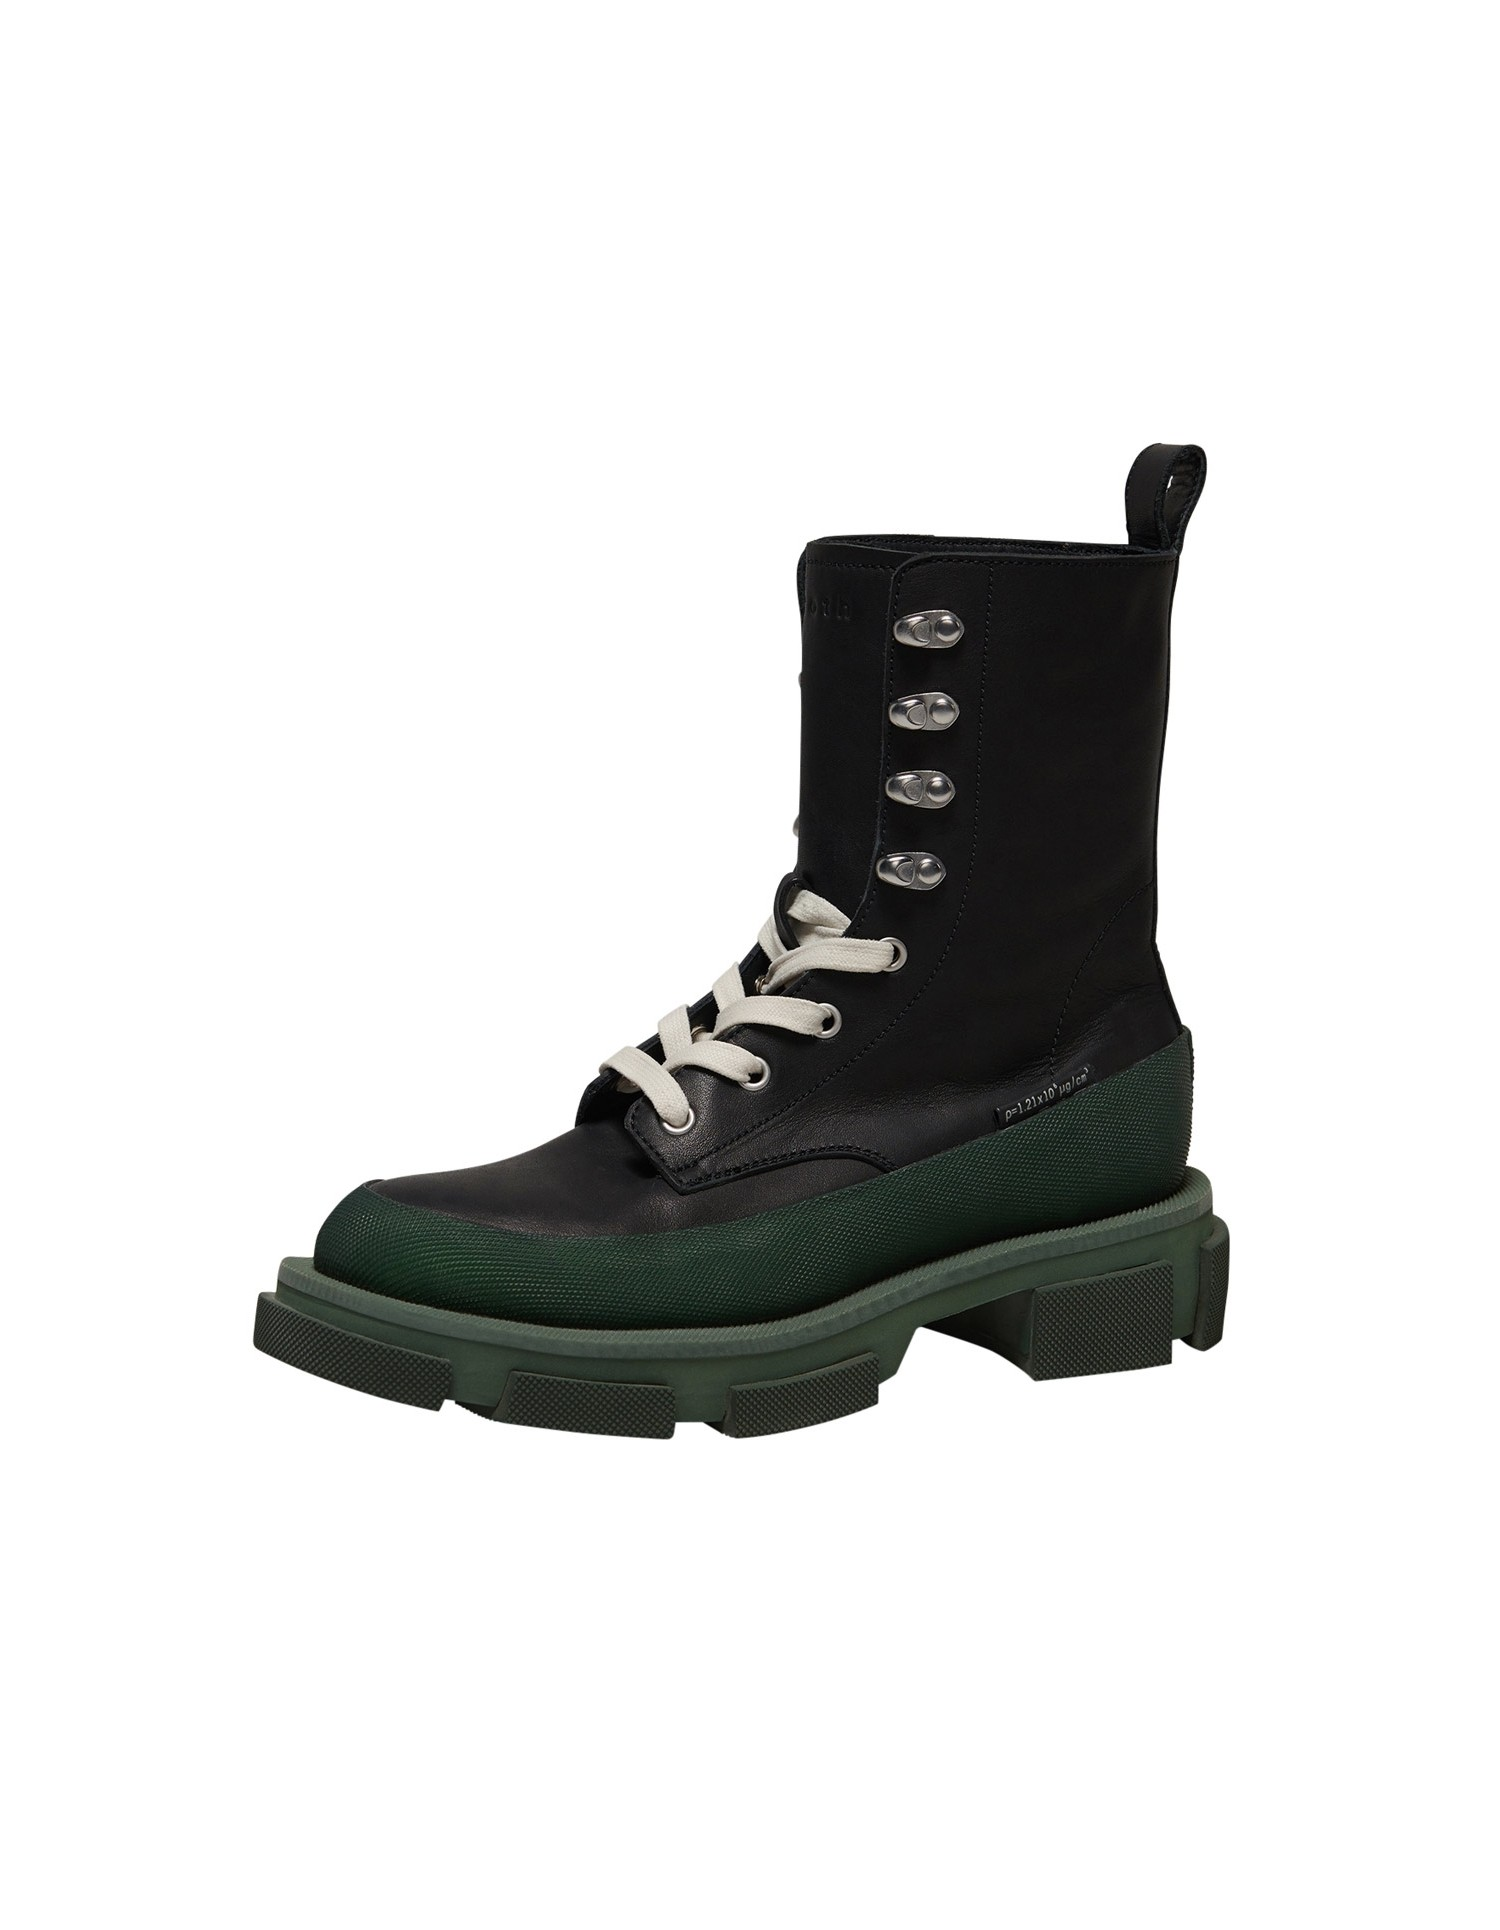 Both x MONSE Gao High Boots in Black and Olive Left Side Angle View